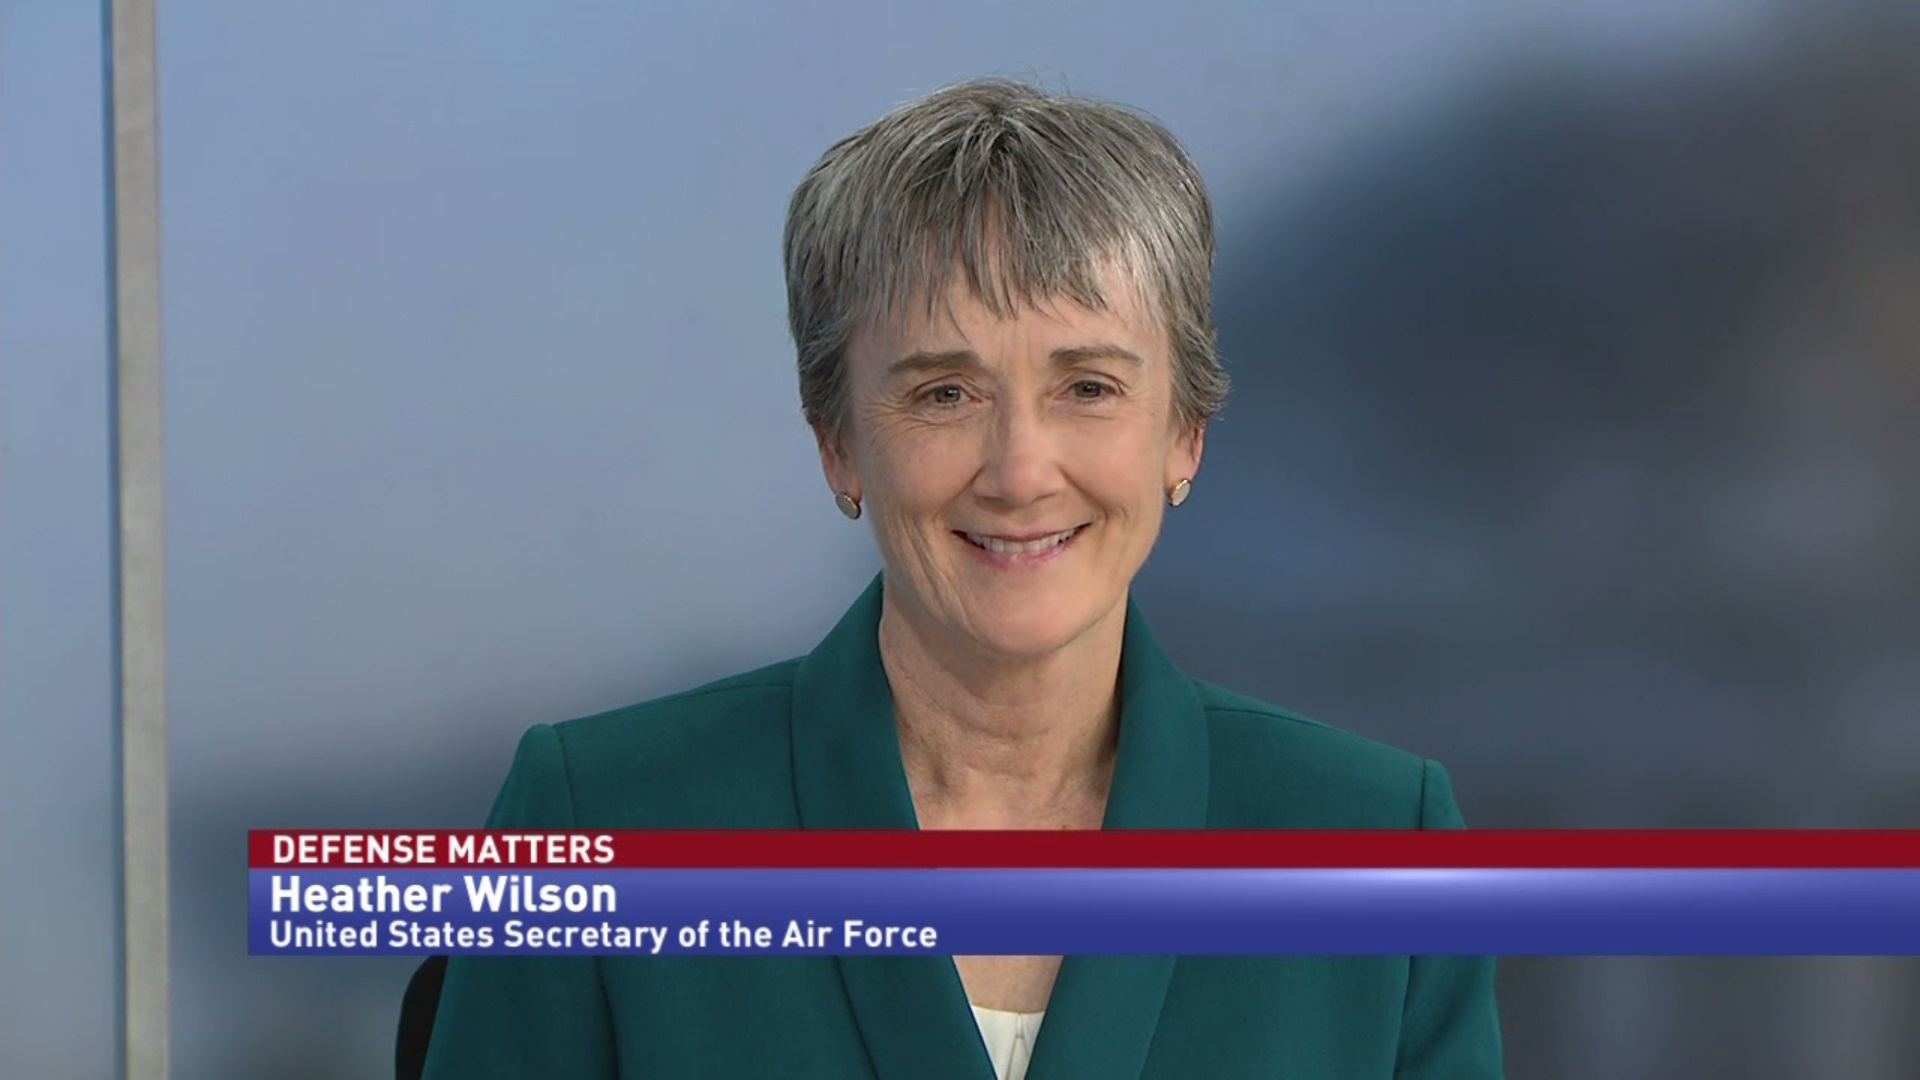 U.S. Air Force Secretary Heather Wilson lays out top priorities